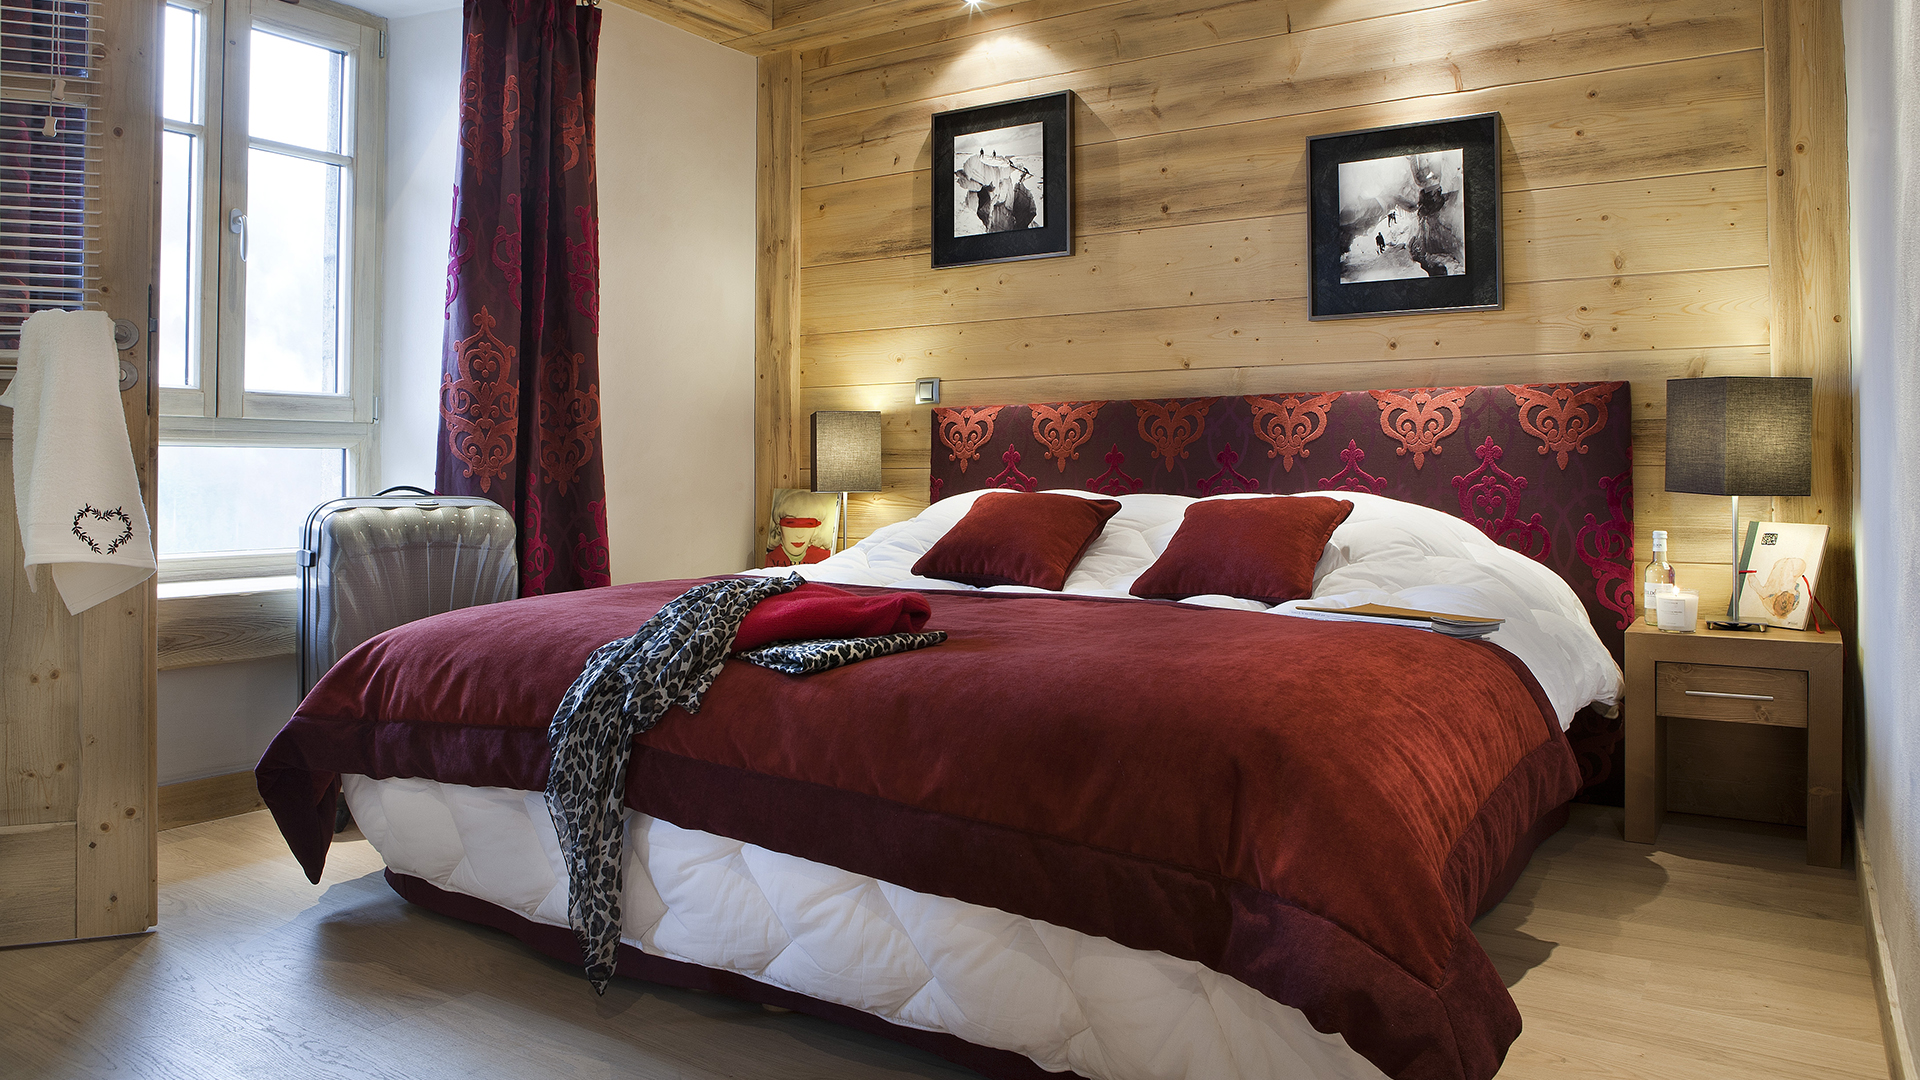 les chalets d 39 ang le holiday apartment in ch tel cgh residences. Black Bedroom Furniture Sets. Home Design Ideas